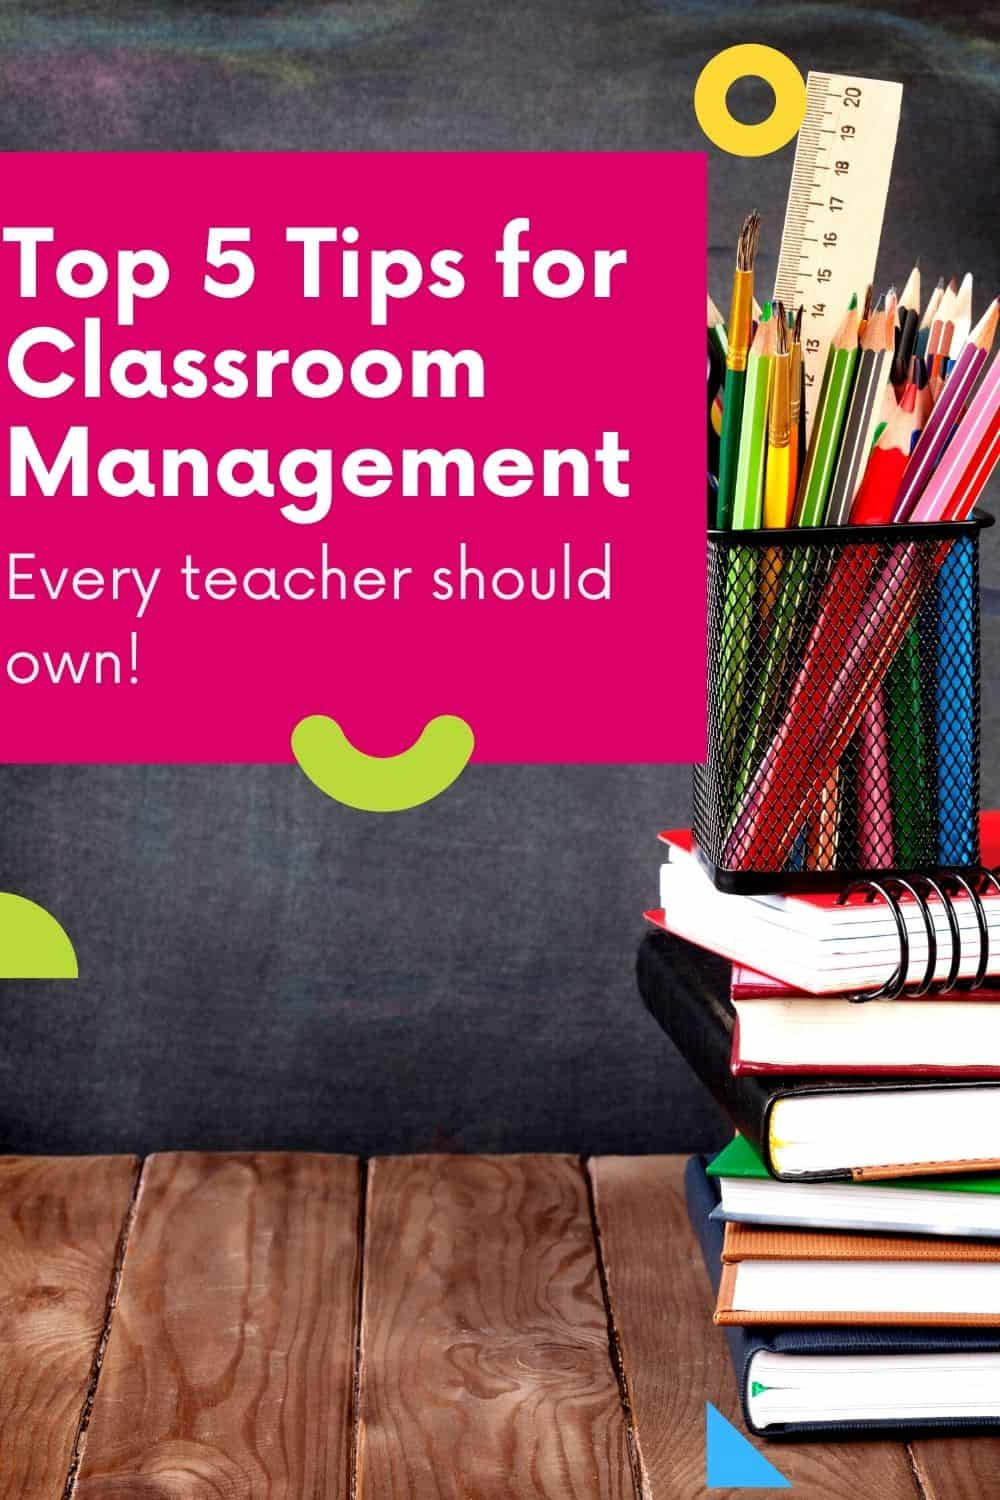 Top 5 Tips for Classroom Management Every Teacher Should Own